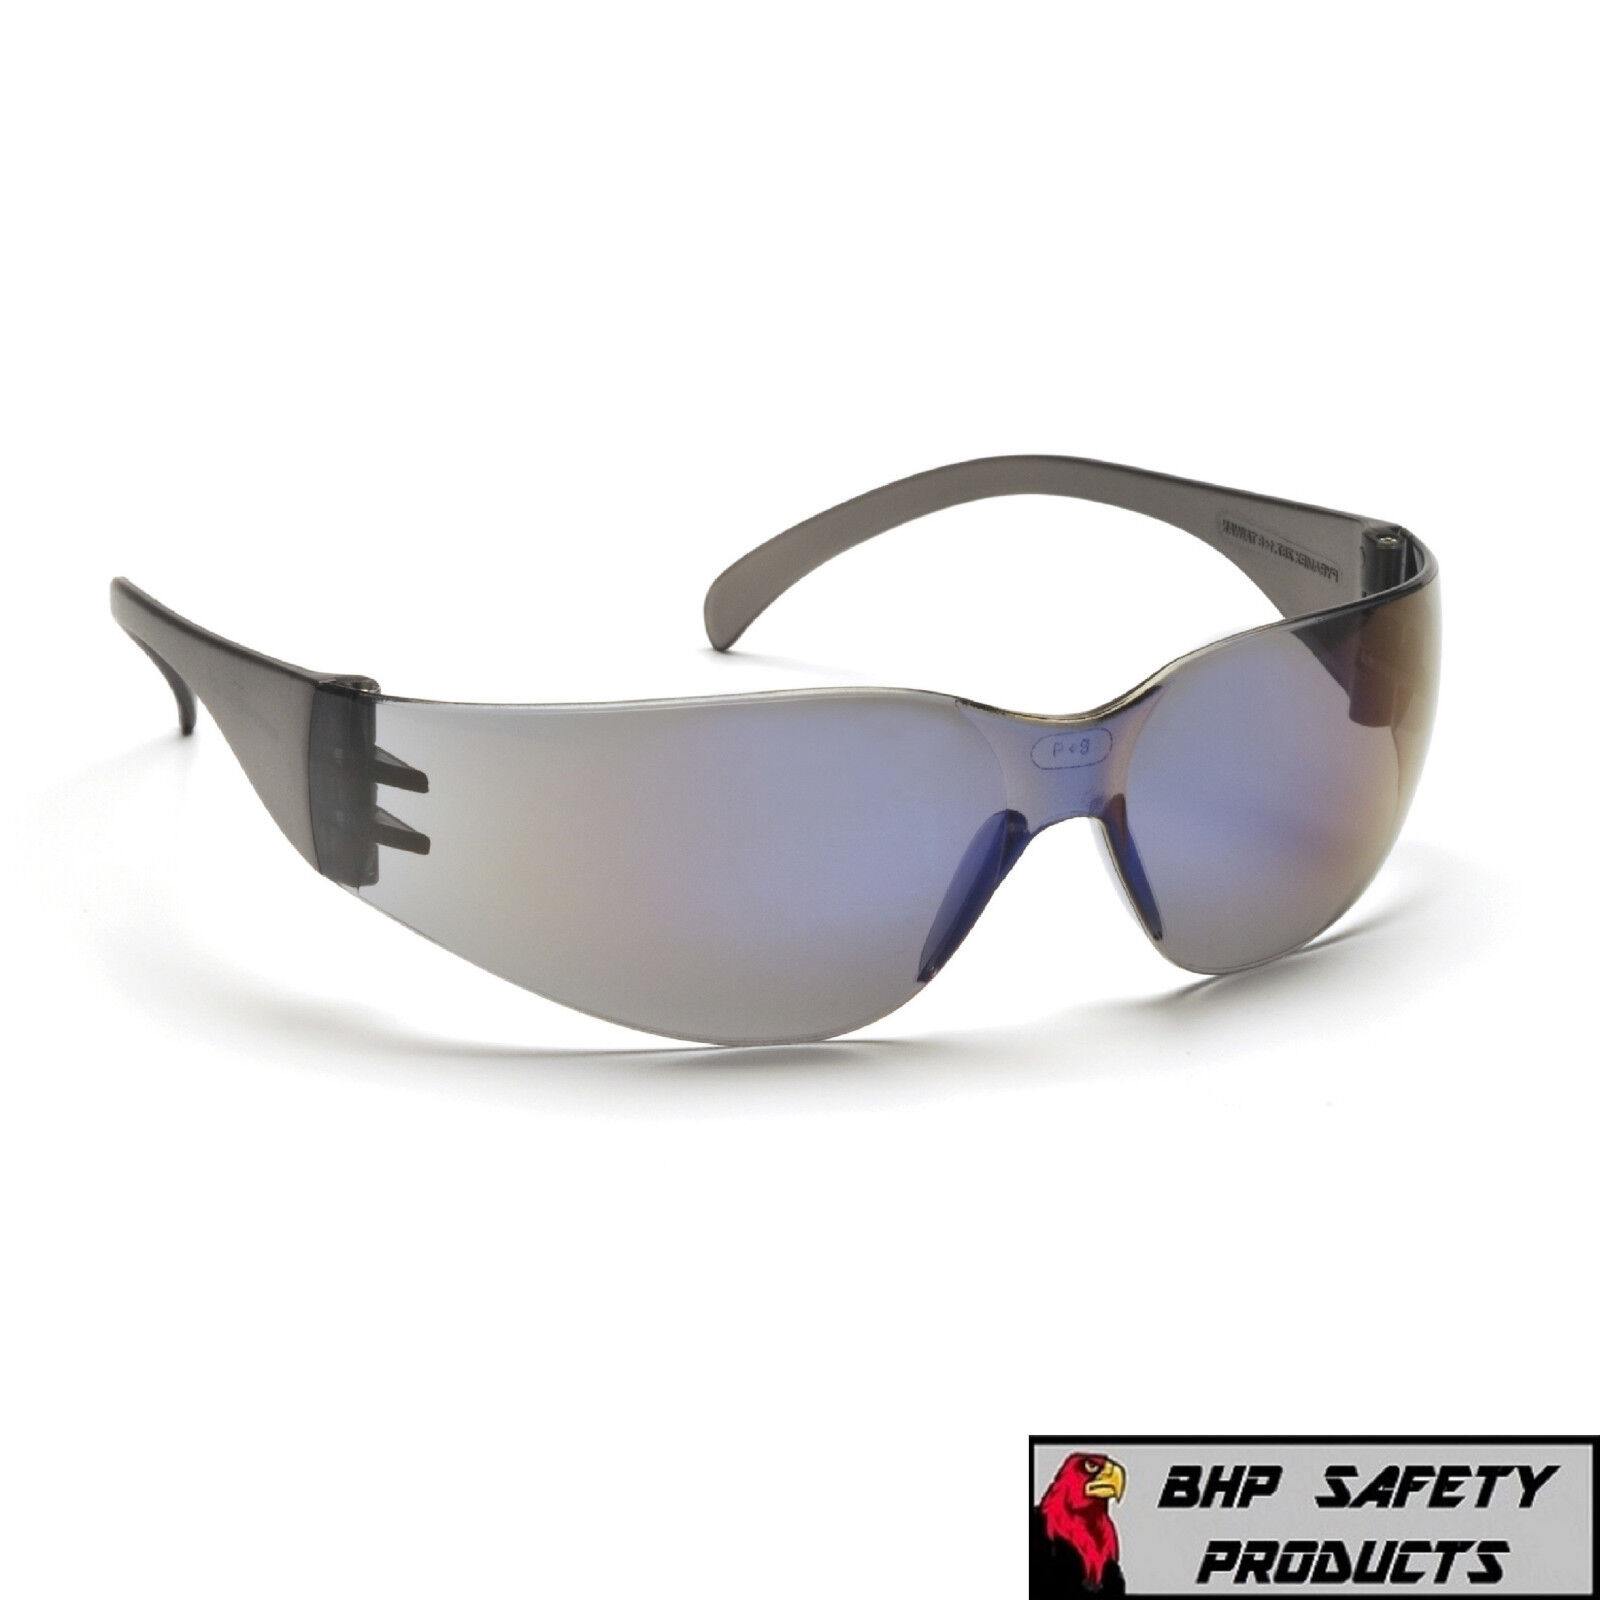 PYRAMEX INTRUDER SAFETY GLASSES ANSI Z87+ WORK EYEWEAR - LIGHTWEIGHT, SUNGLASSES Blue Mirror S4175S